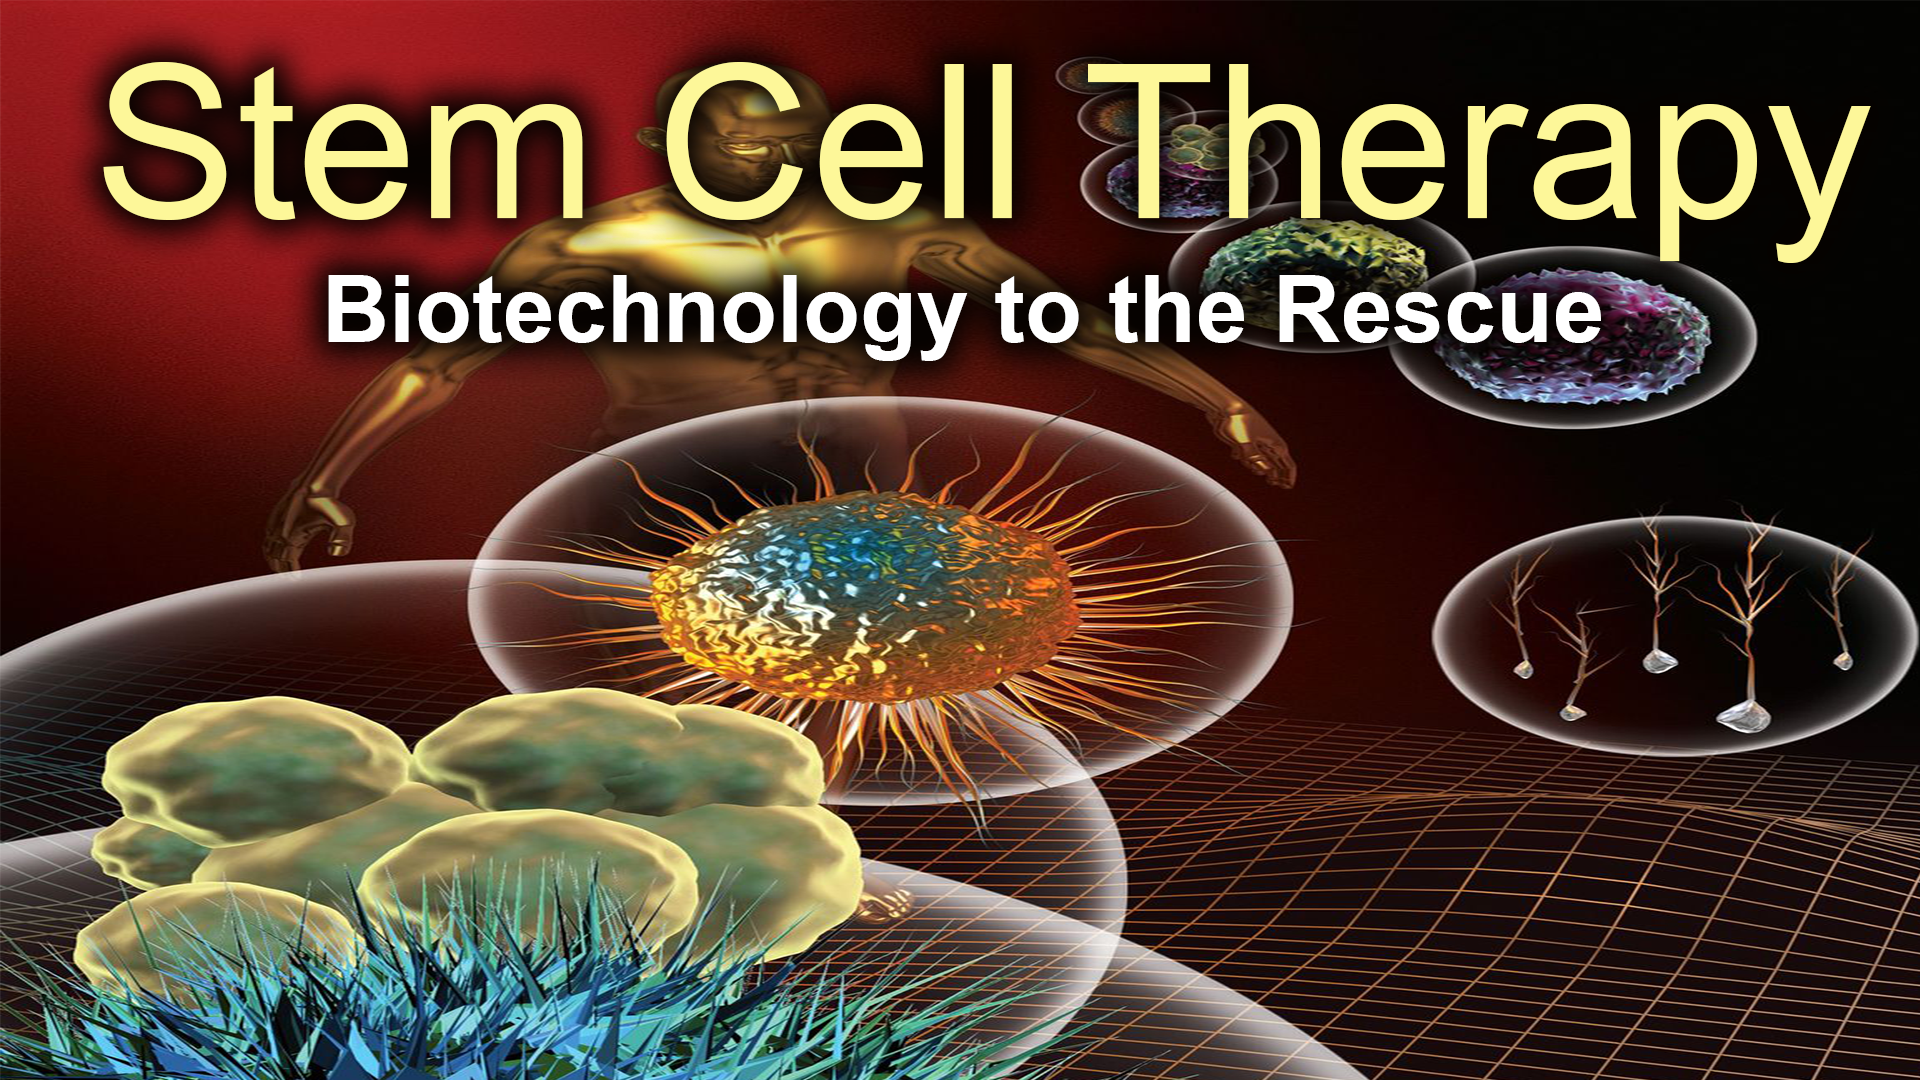 Stem Cell Therapy: Biotechnology to the Rescue